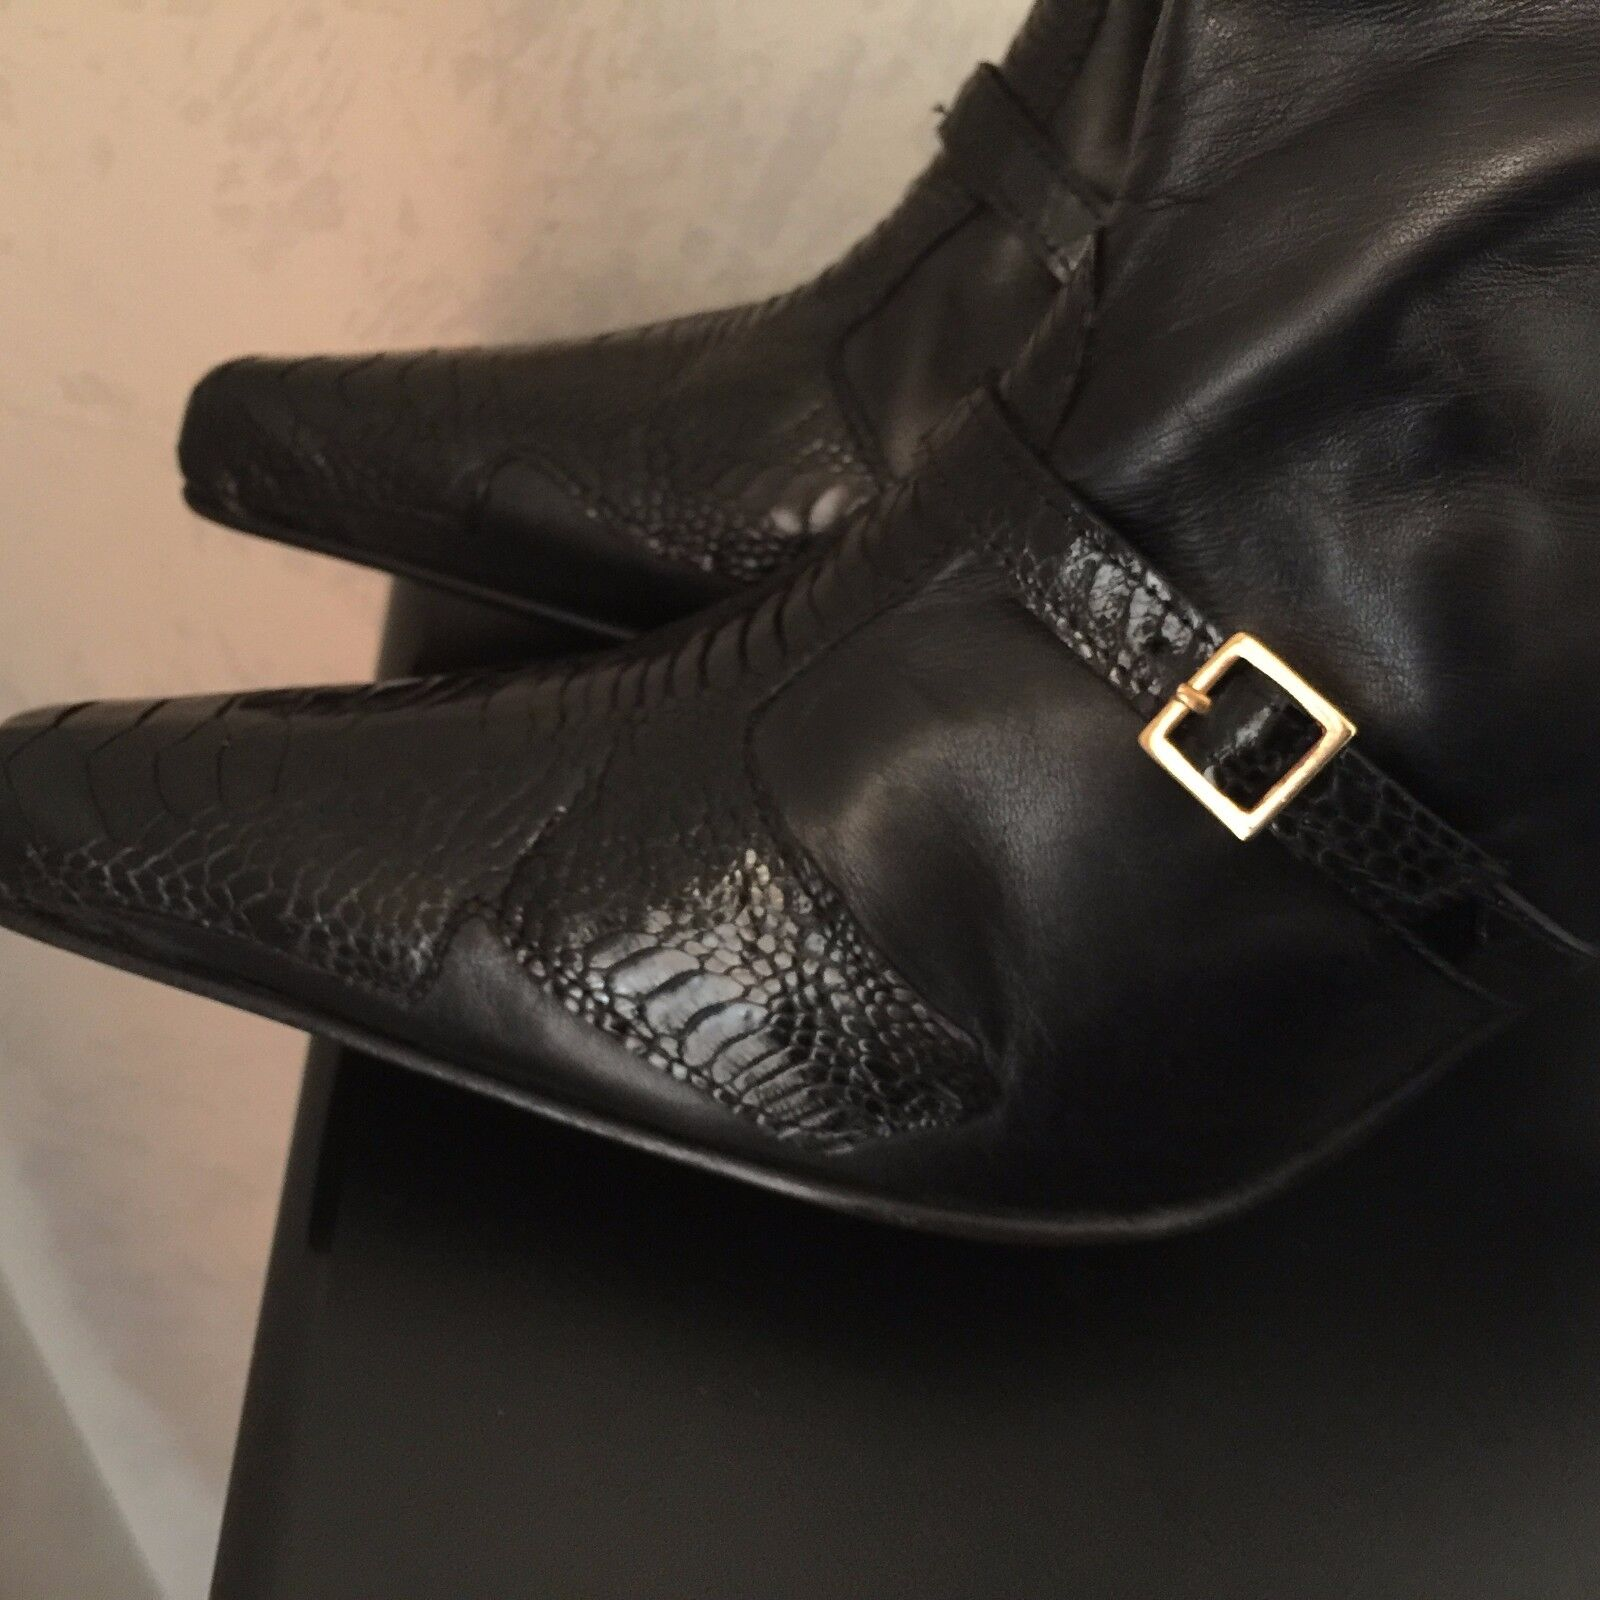 AUT GF/GIANFRANCO FERRE BLACK 39/9 LEATHER/ALIGATOR COMB KNEE HIGH Stiefel 39/9 BLACK NWT e4fb63